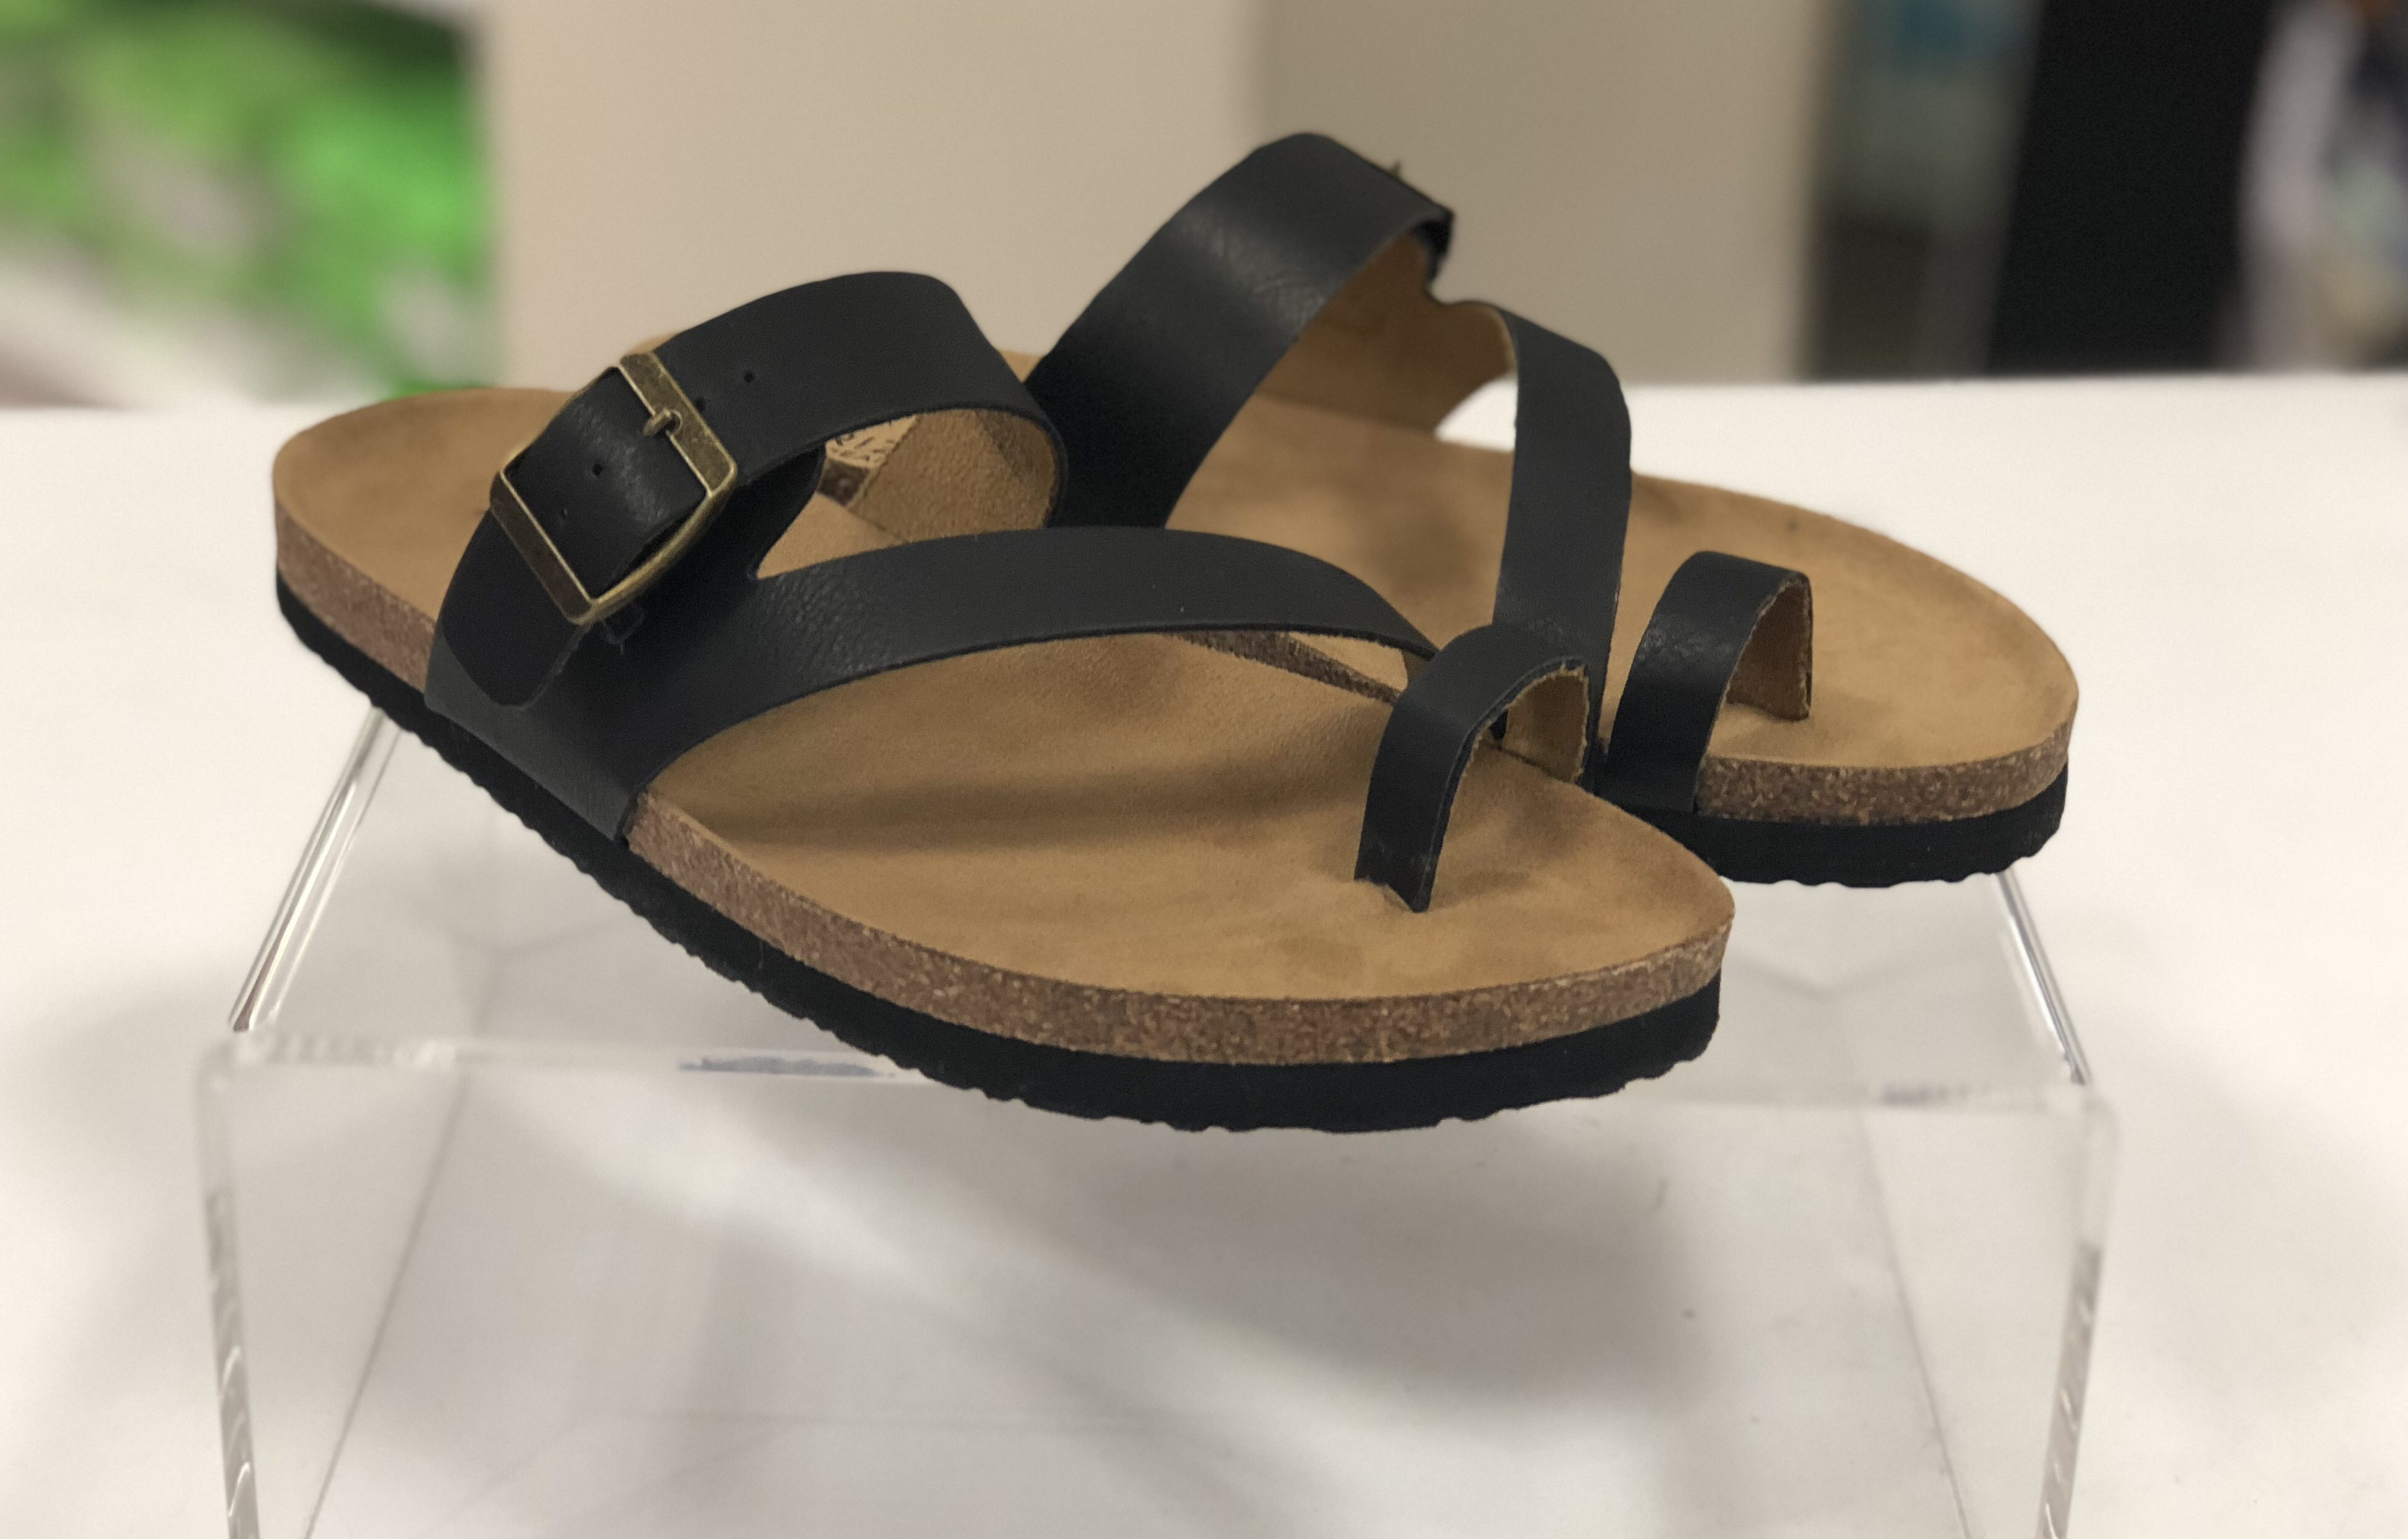 3bdc0324bdc54 Buy St. John s Bay Ante Women s Wedge Sandals  47. Buy Liz Claiborne Twiggy  Women s Strap Sandals  47. Total after B1G2 free    47